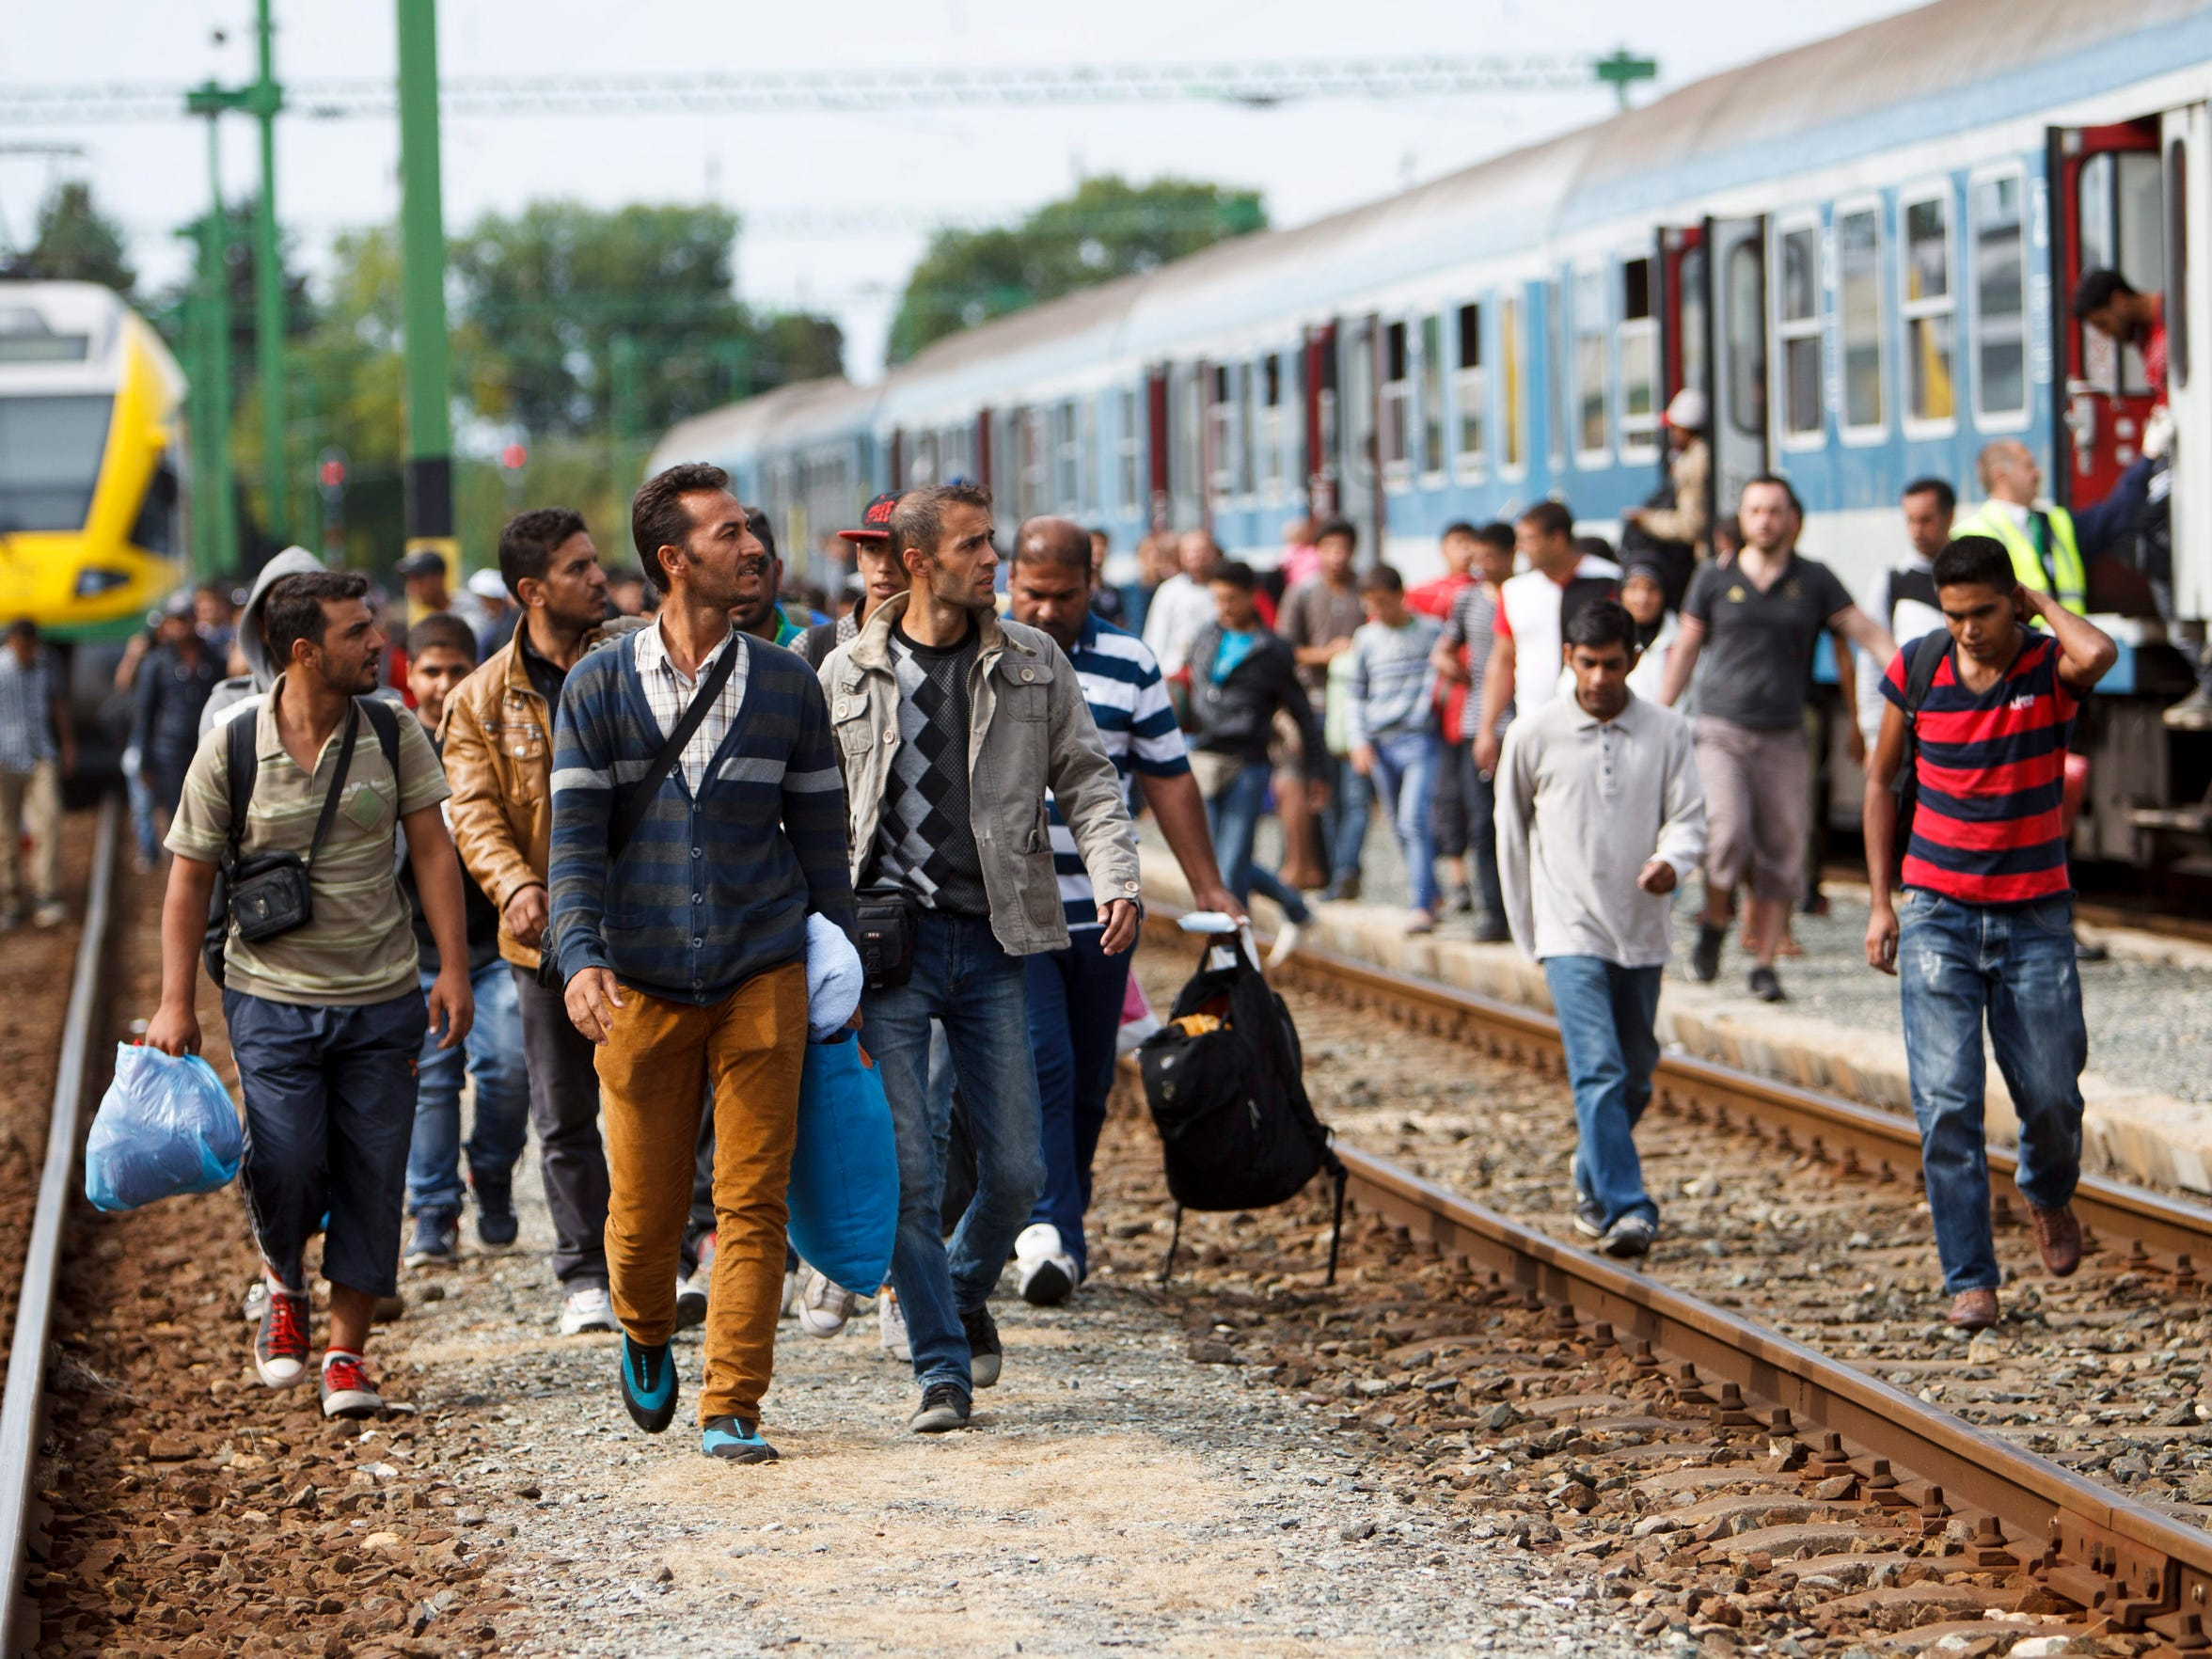 Migrants and refugees arrive at the railway station in Szentgotthard, Hungary, near the Austrian border, on Sept. 19, 2015.